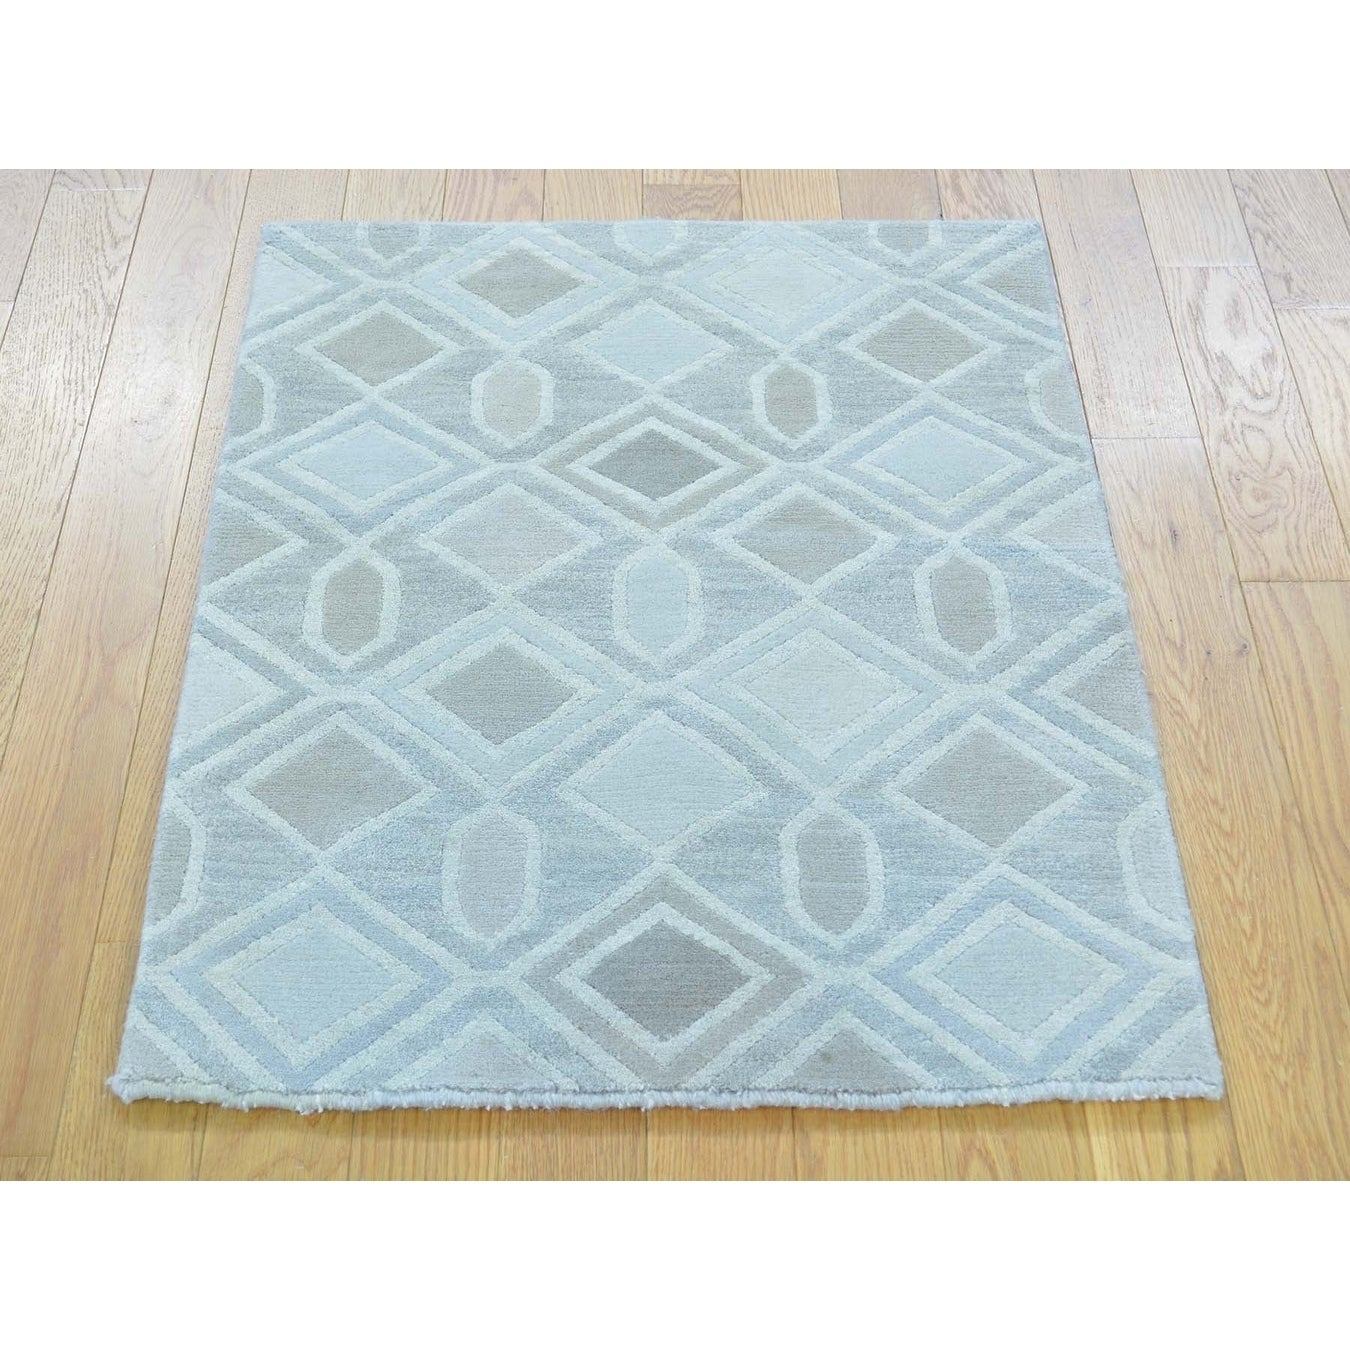 Hand Knotted Multicolored Modern & Contemporary with Wool & Silk Oriental Rug - 21 x 210